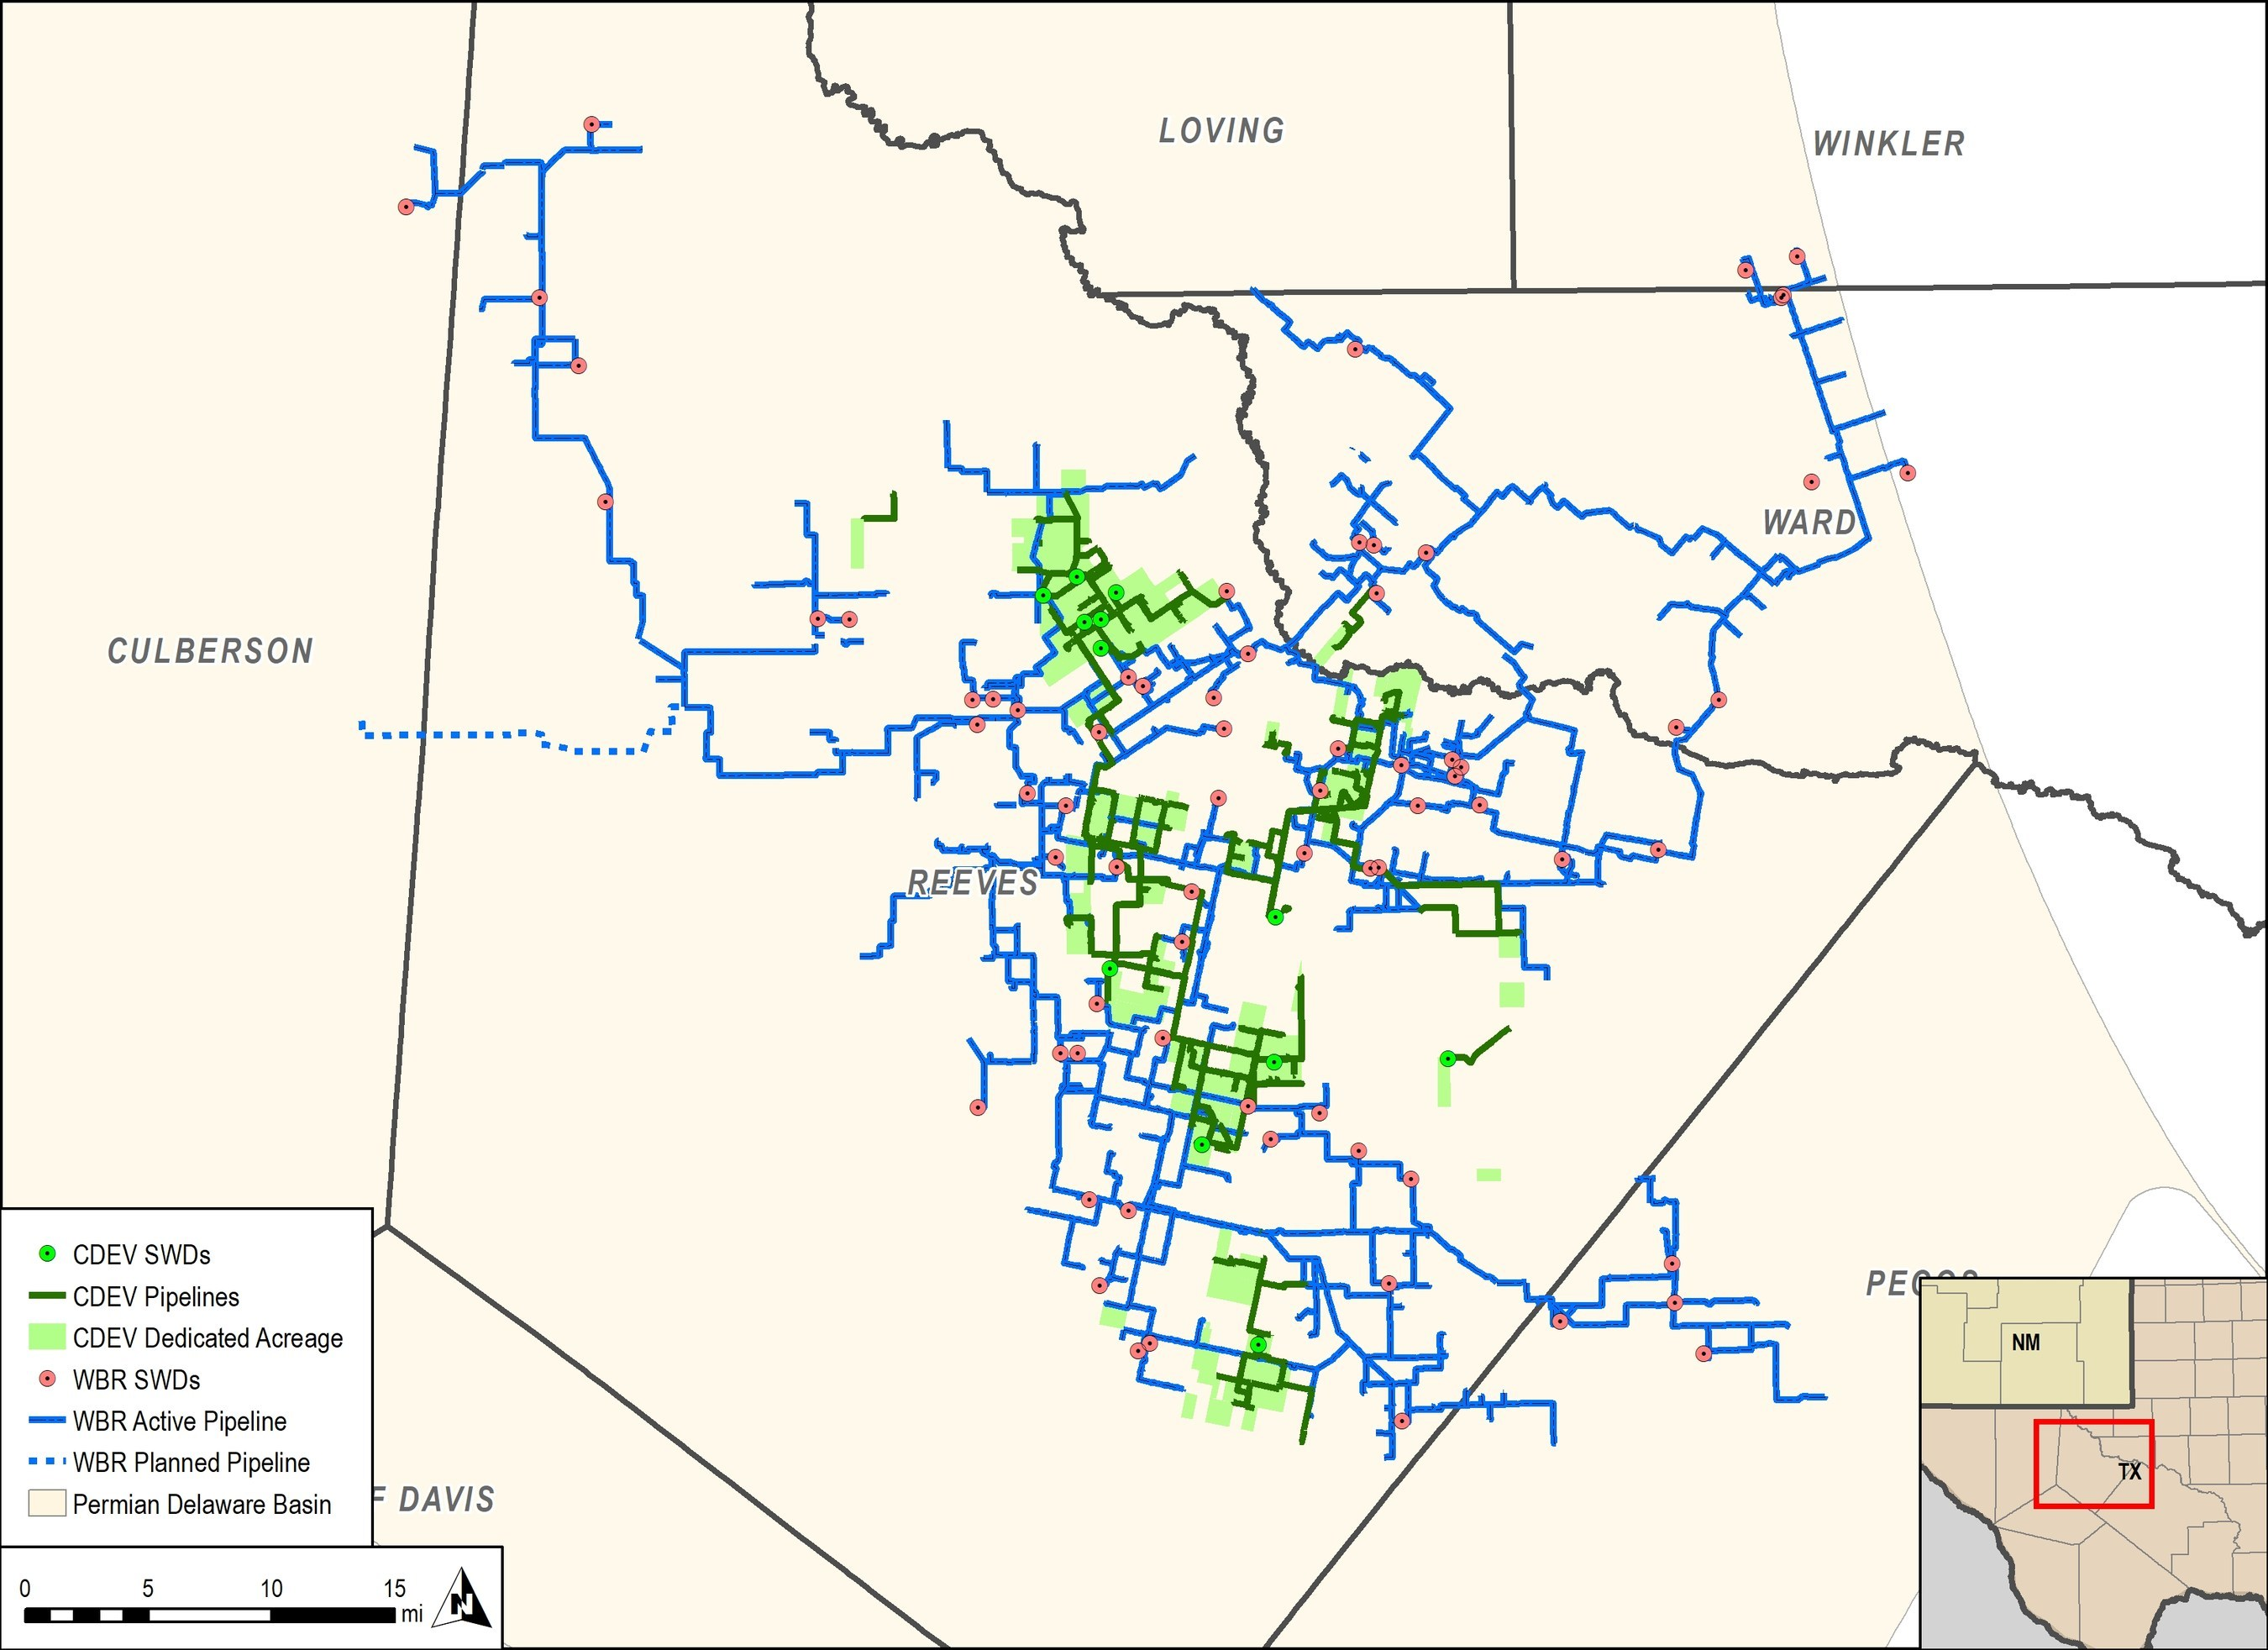 WaterBridge's produced water handling network spans the southern Delaware Basin. (Source: WaterBridge Resources LLC)